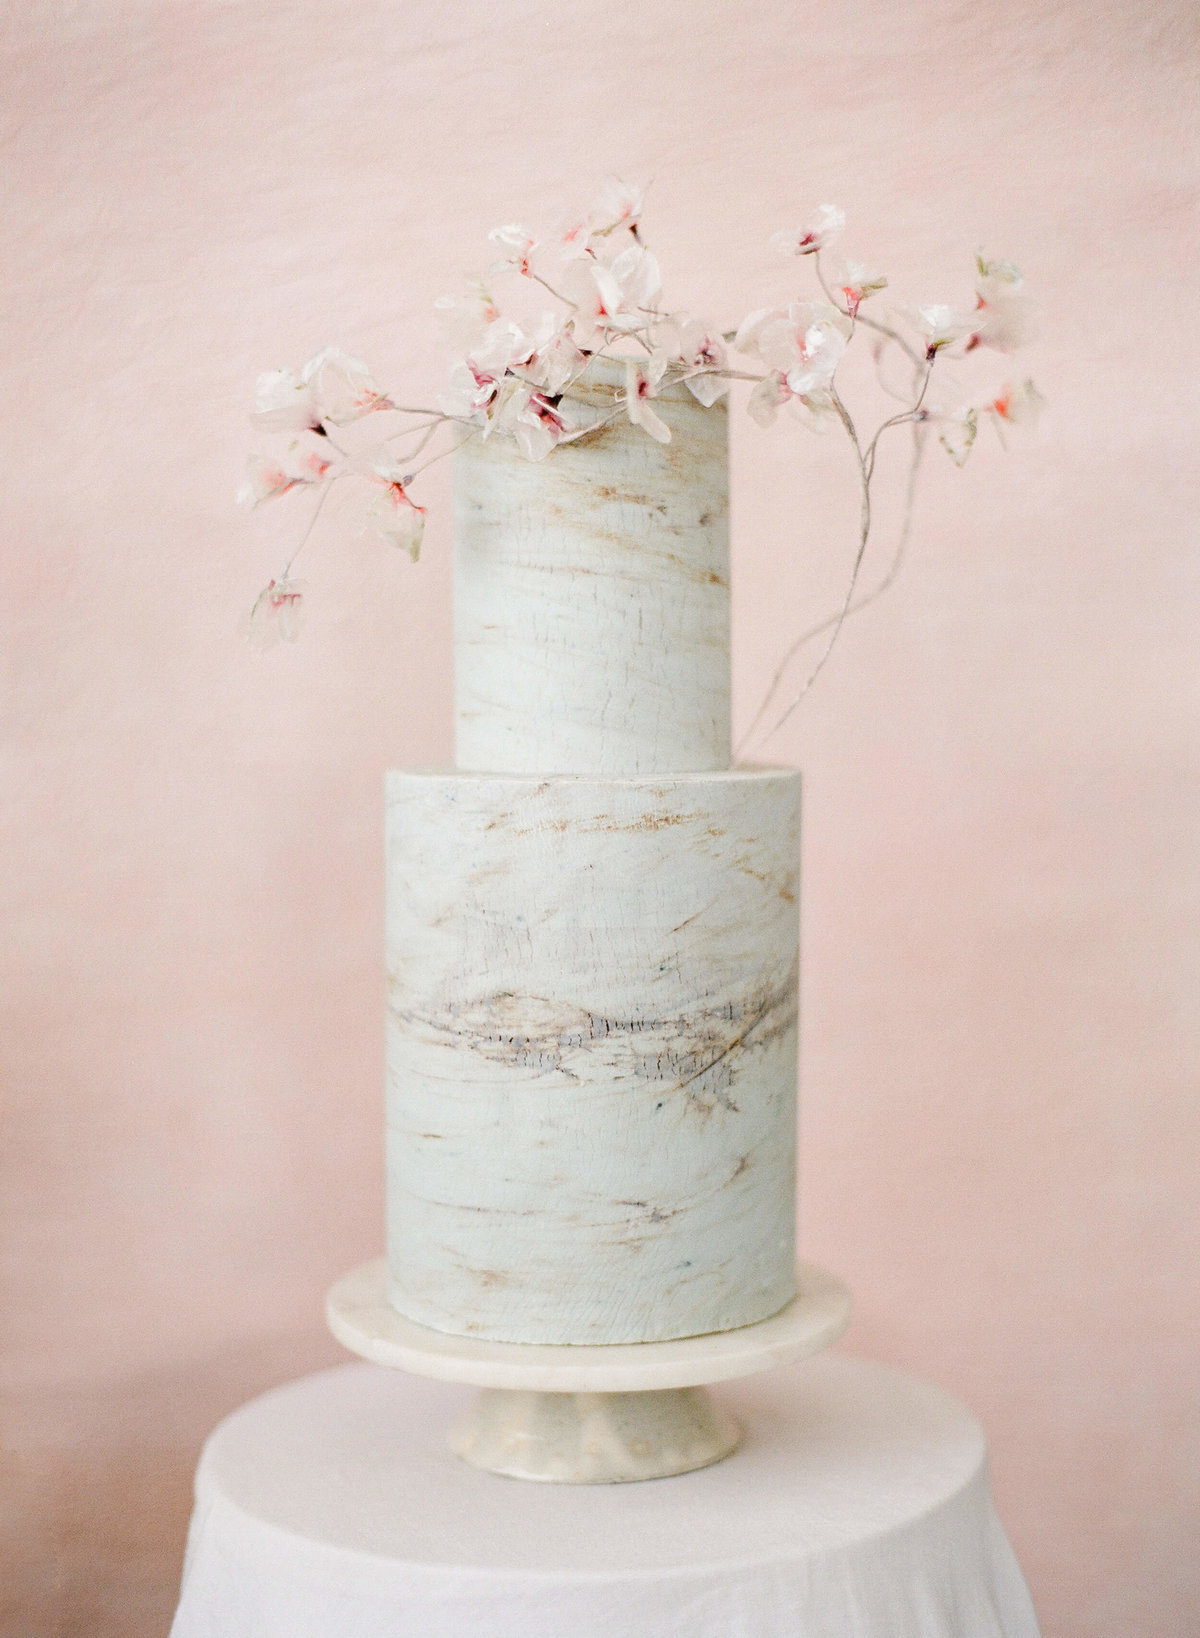 26-KTMerry-weddings-cake-tree-bark